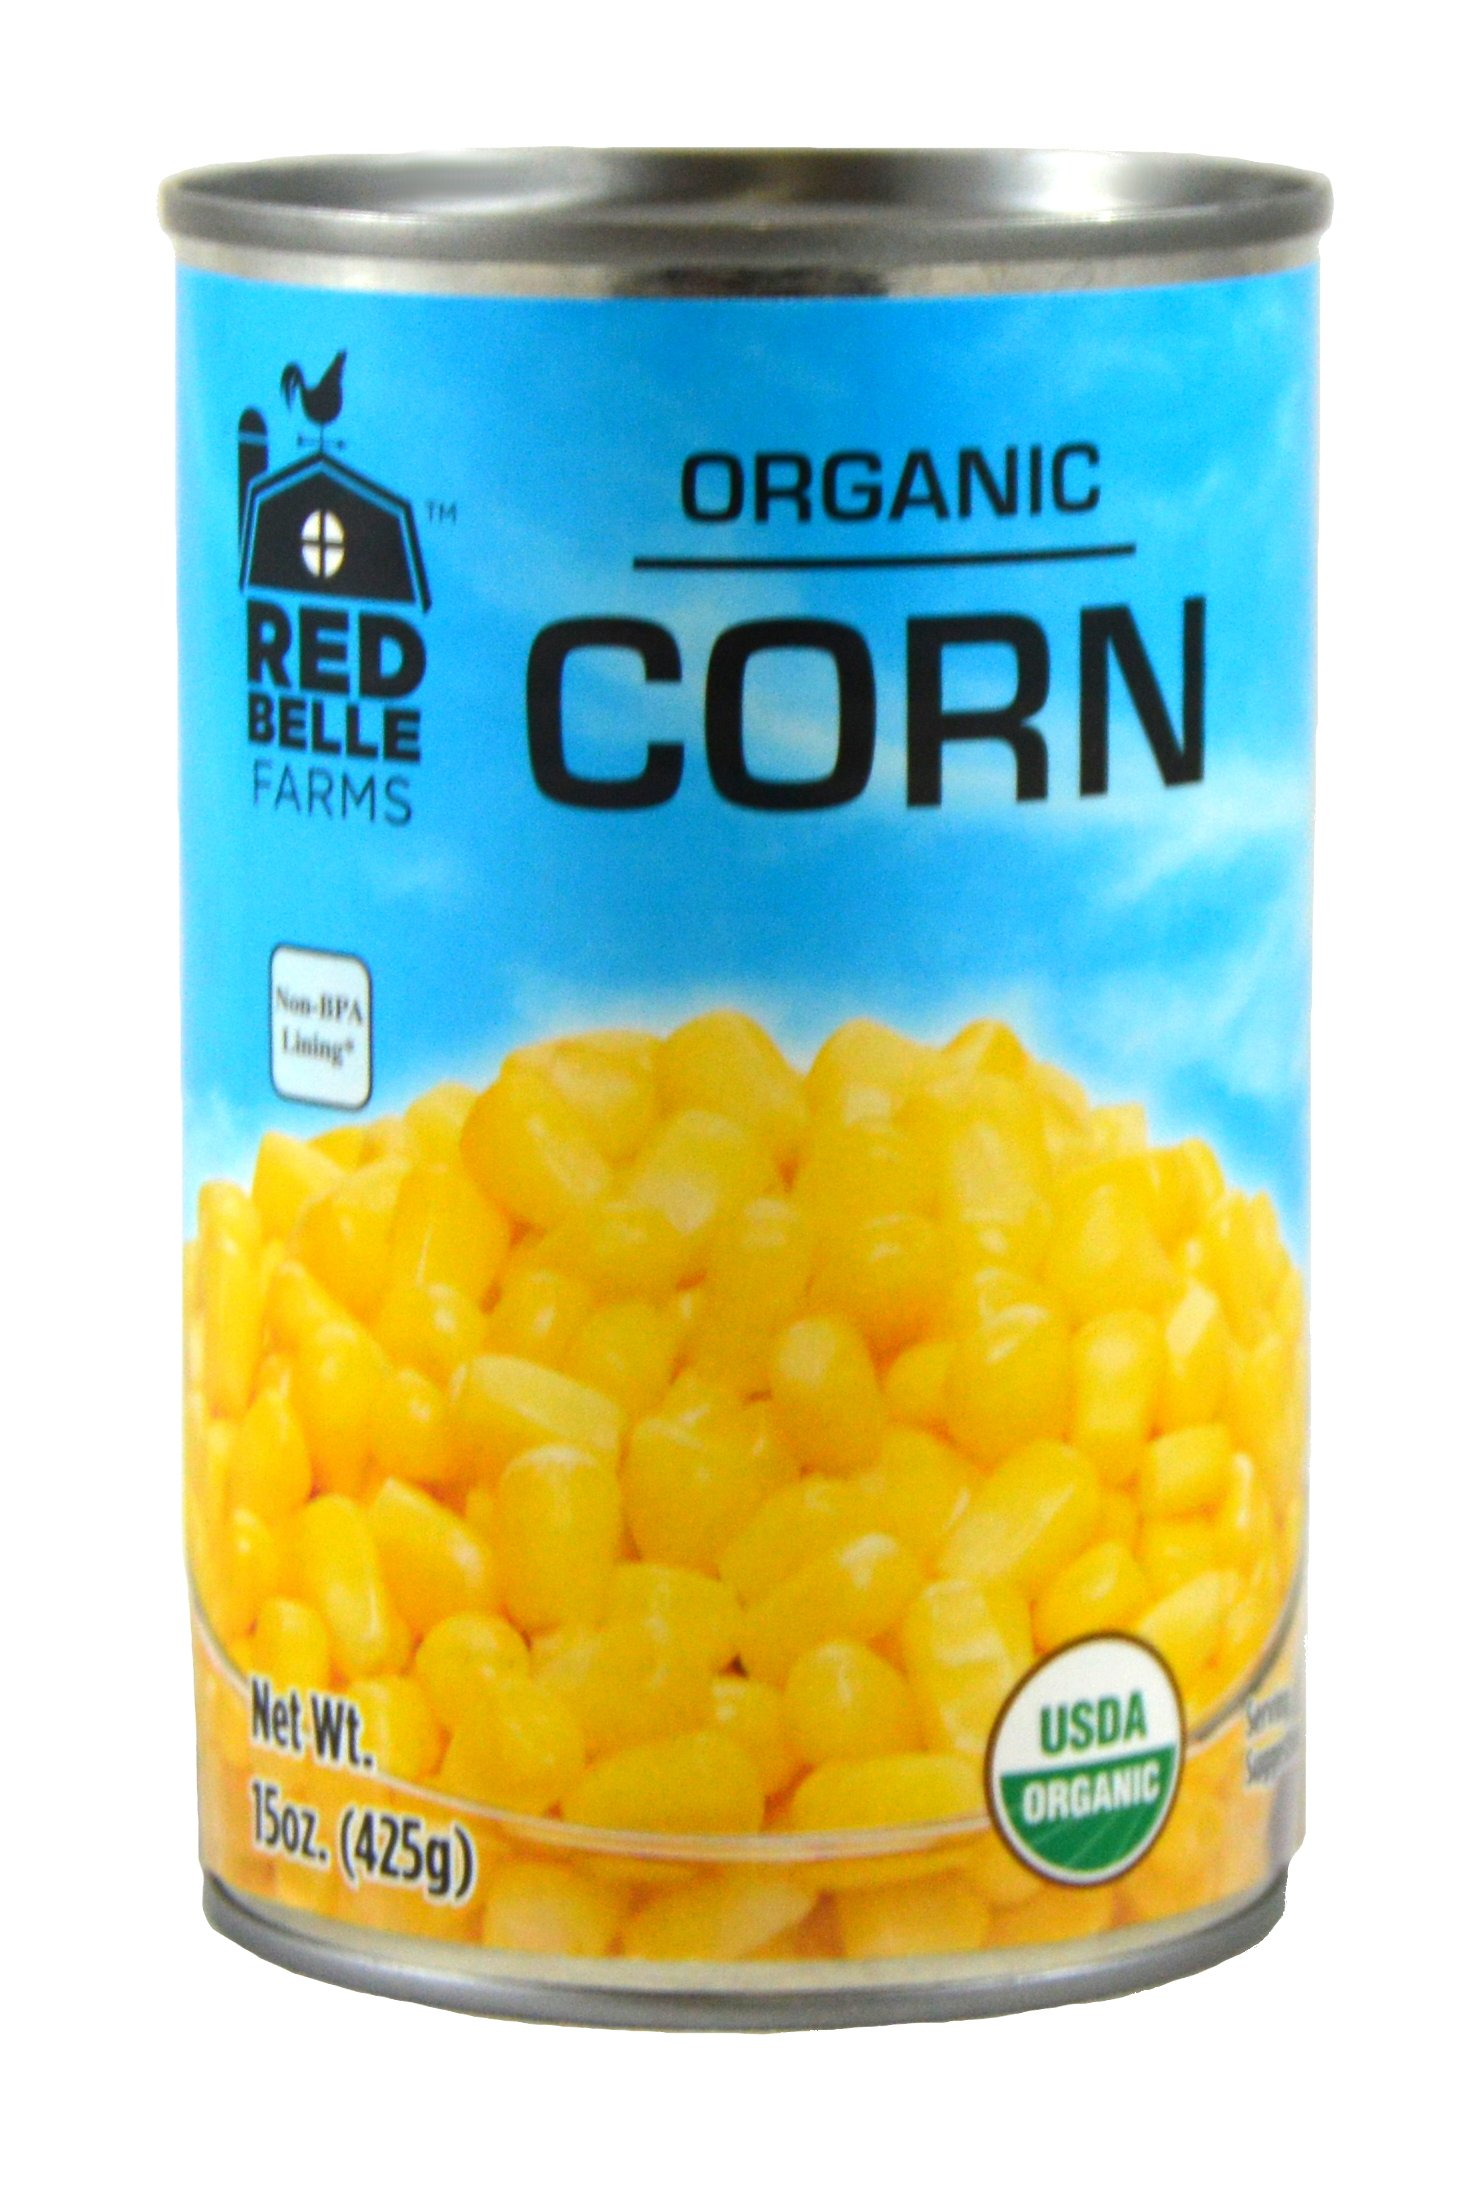 Red Belle Farms Organic Whole Kernel Corn, 15 oz (425 g) (Pack of 12)